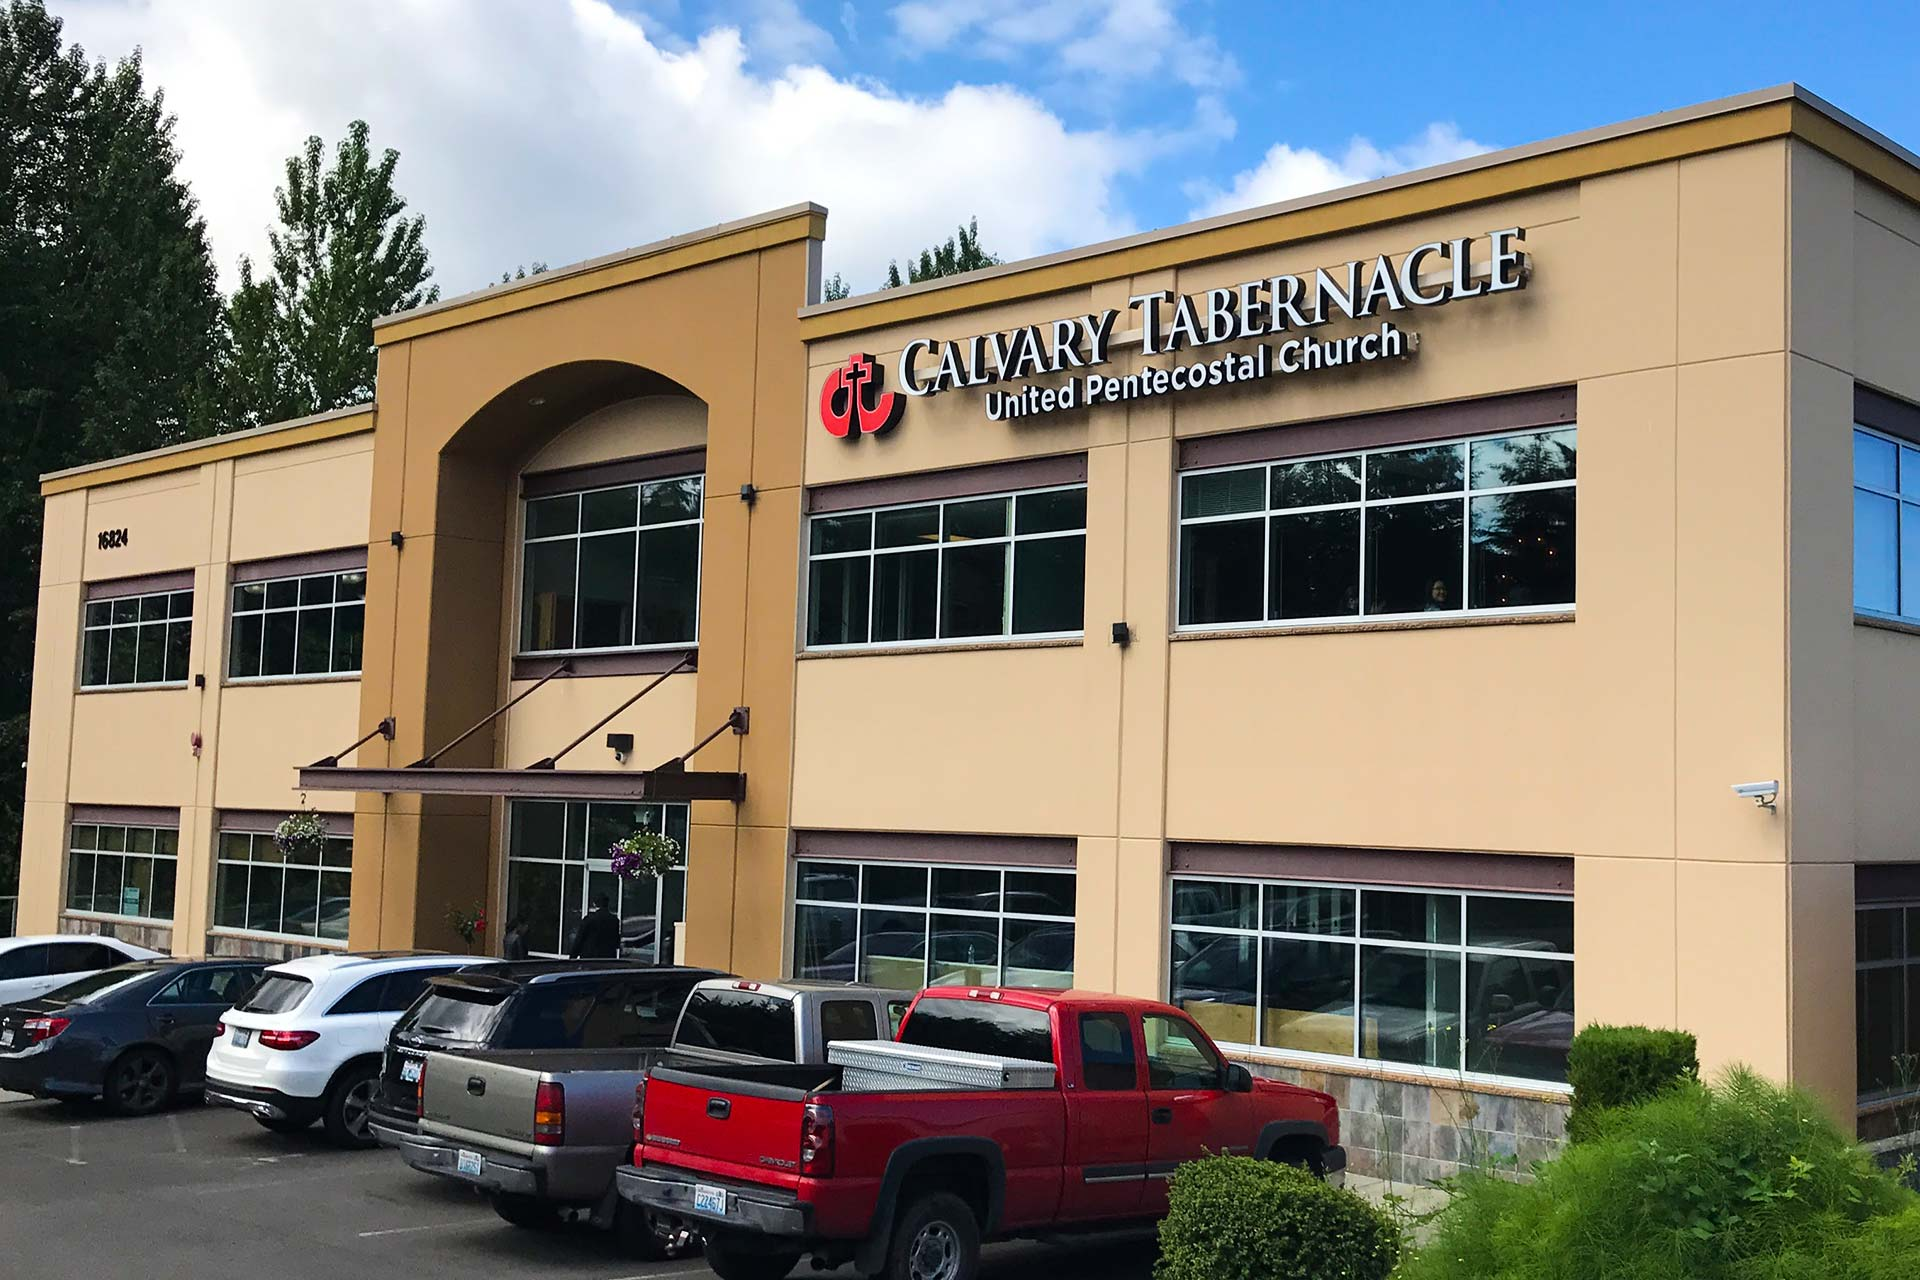 exterior of the calvary tabernacle building in lynnwood, washington